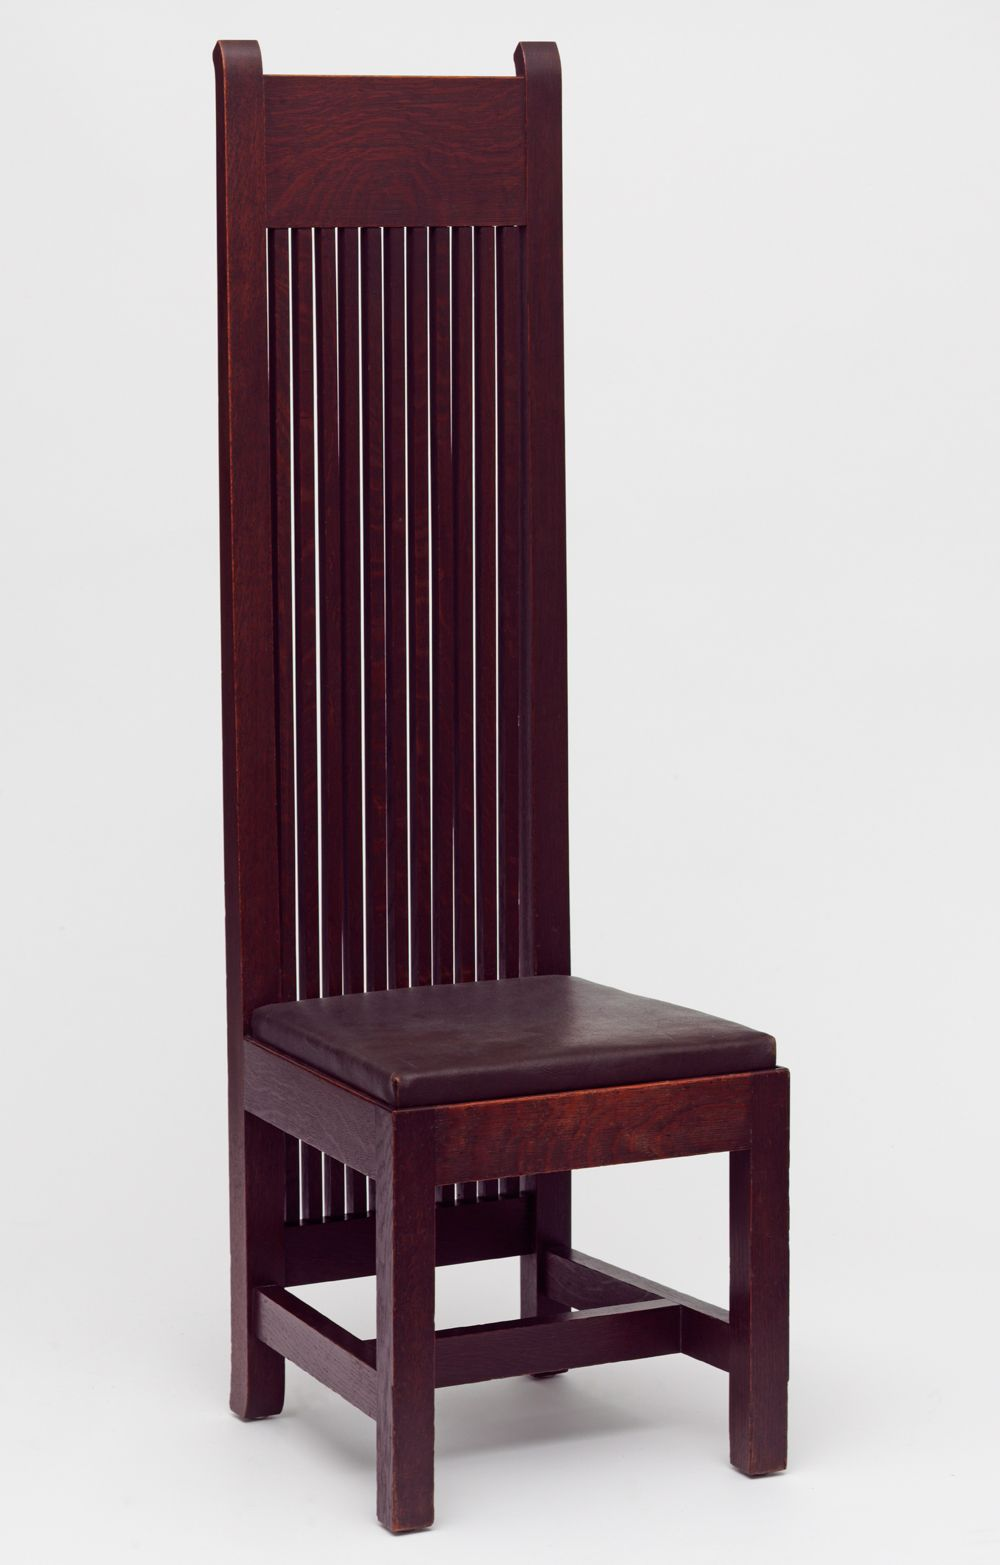 U s arts and crafts dining chair 1902 designer frank lloyd wright